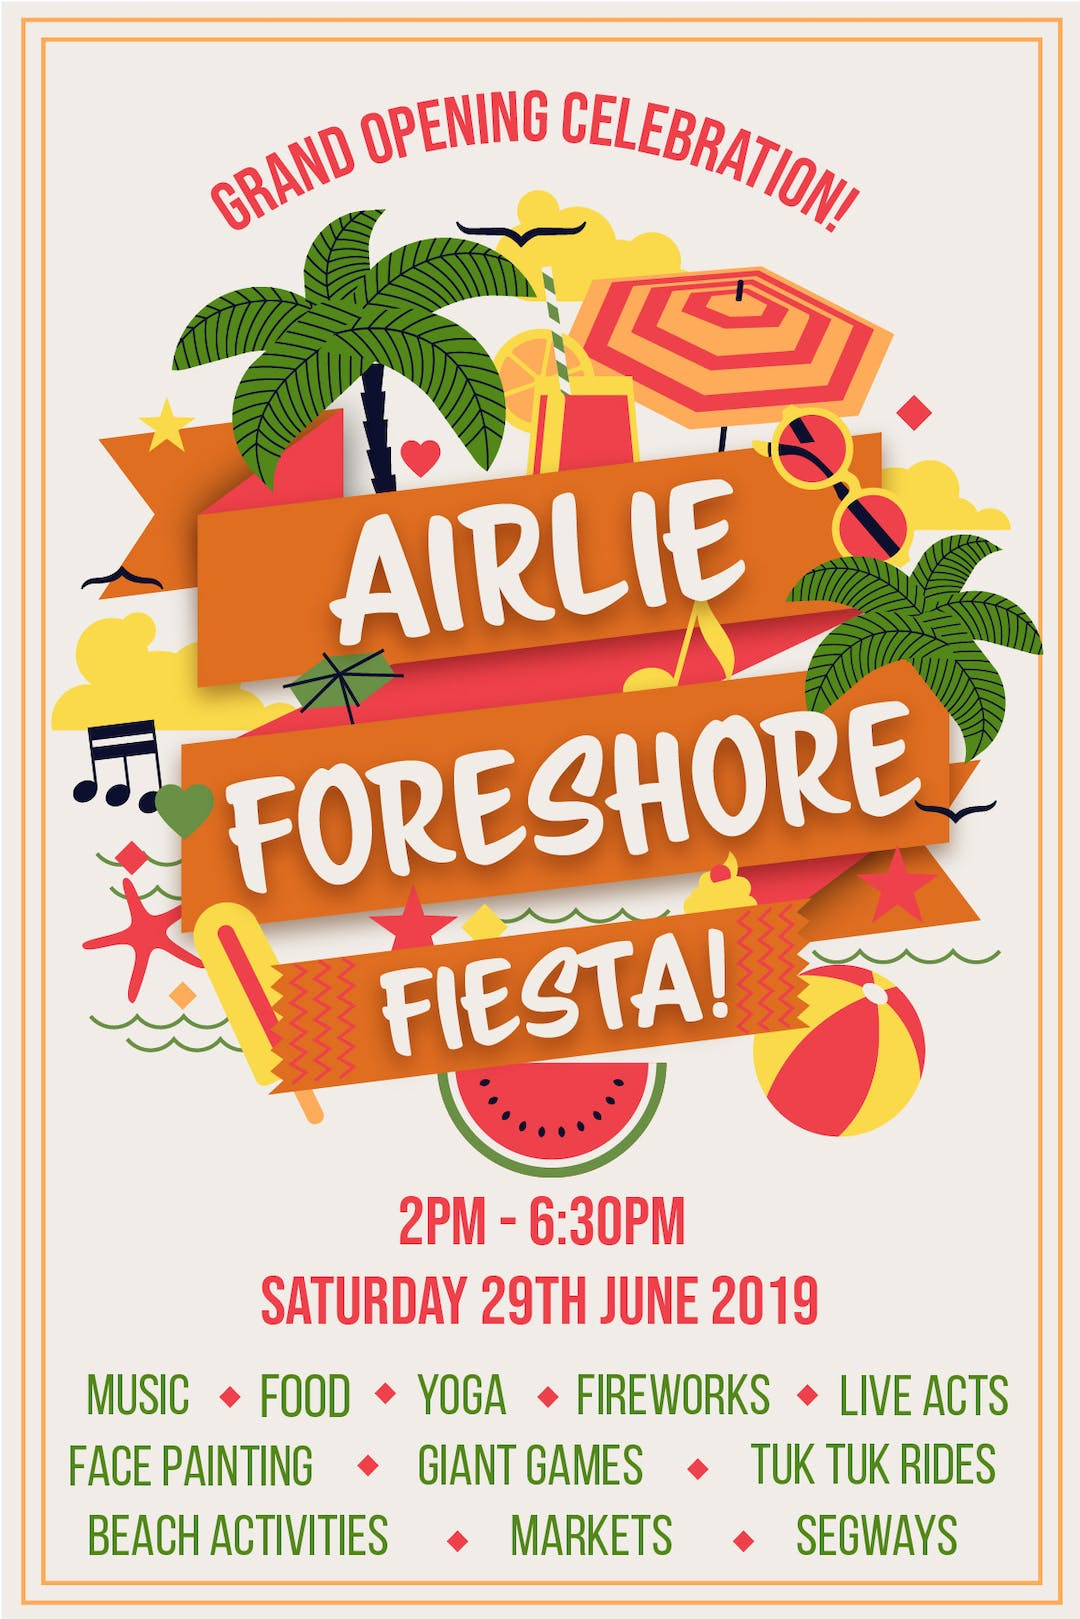 Airlie foreshore fiesta poster   final 01